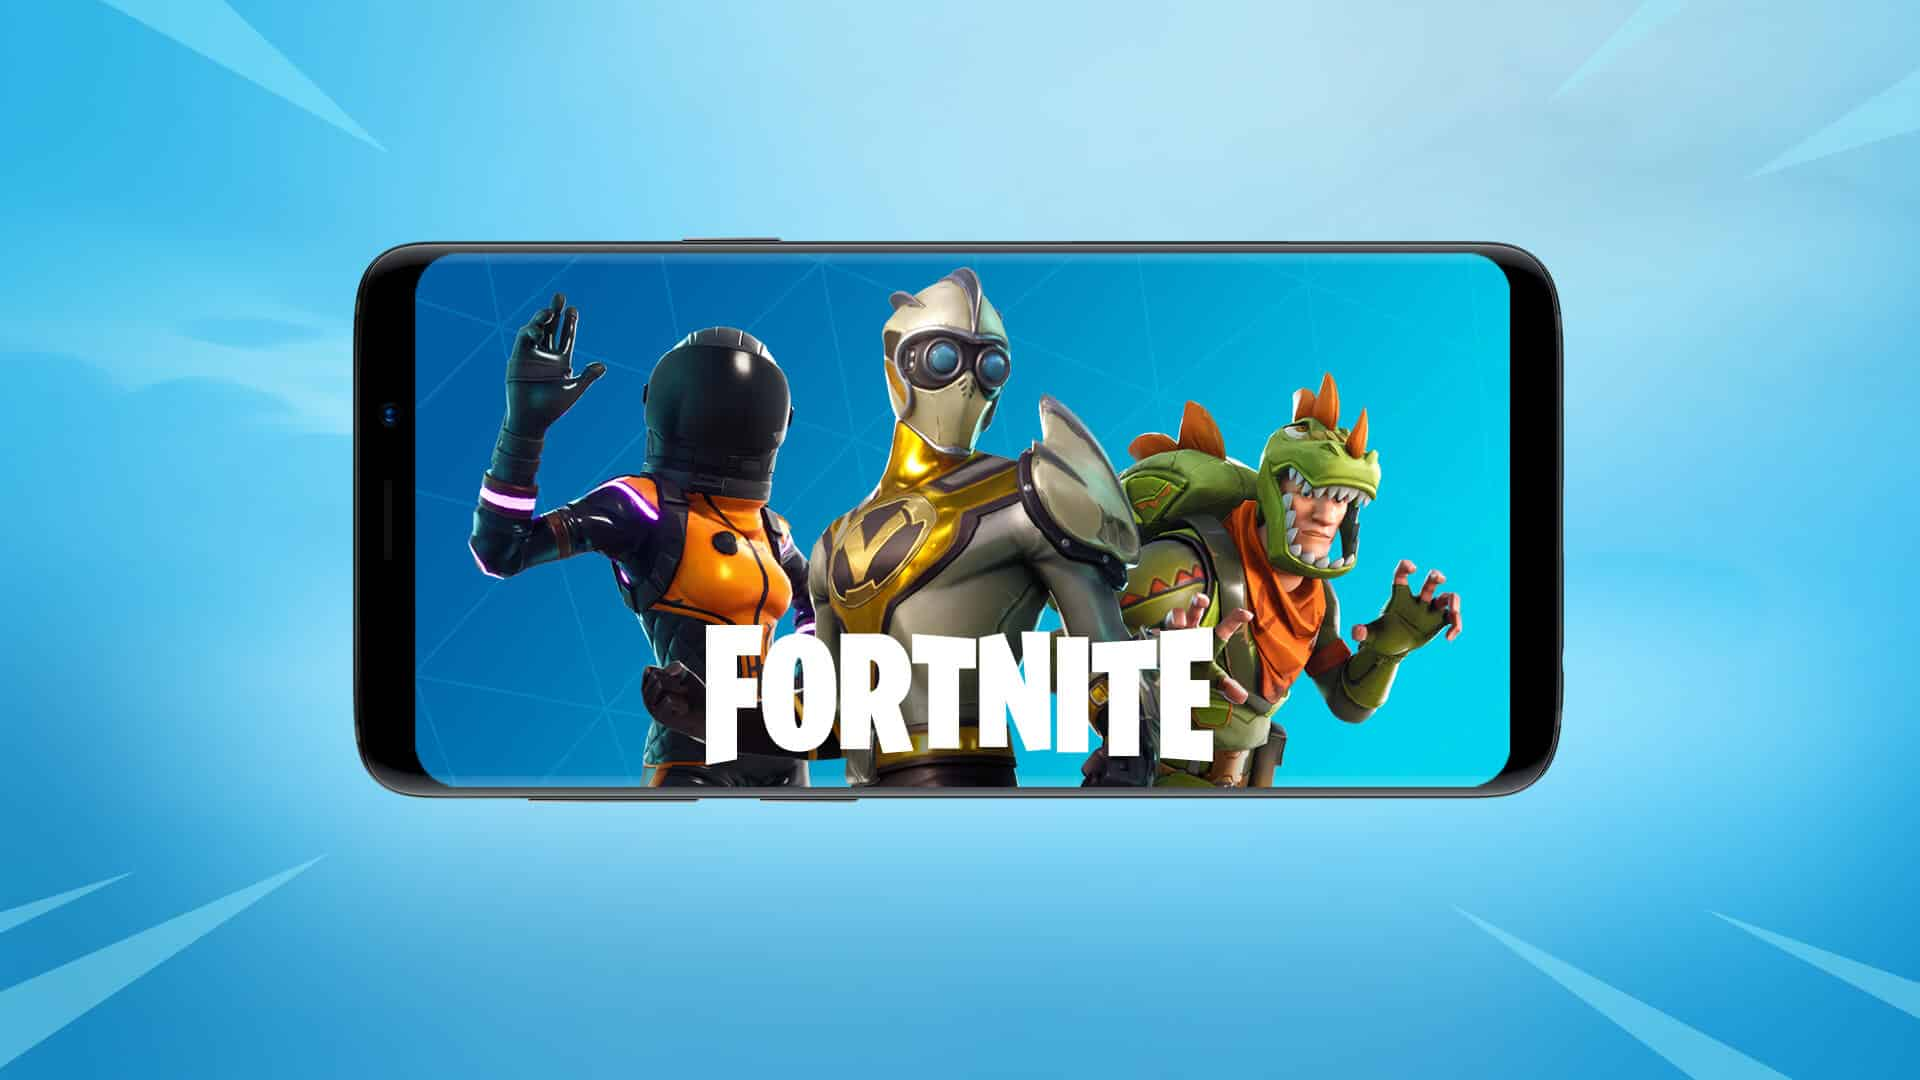 Fortnite for Android dropped out from the Play Store